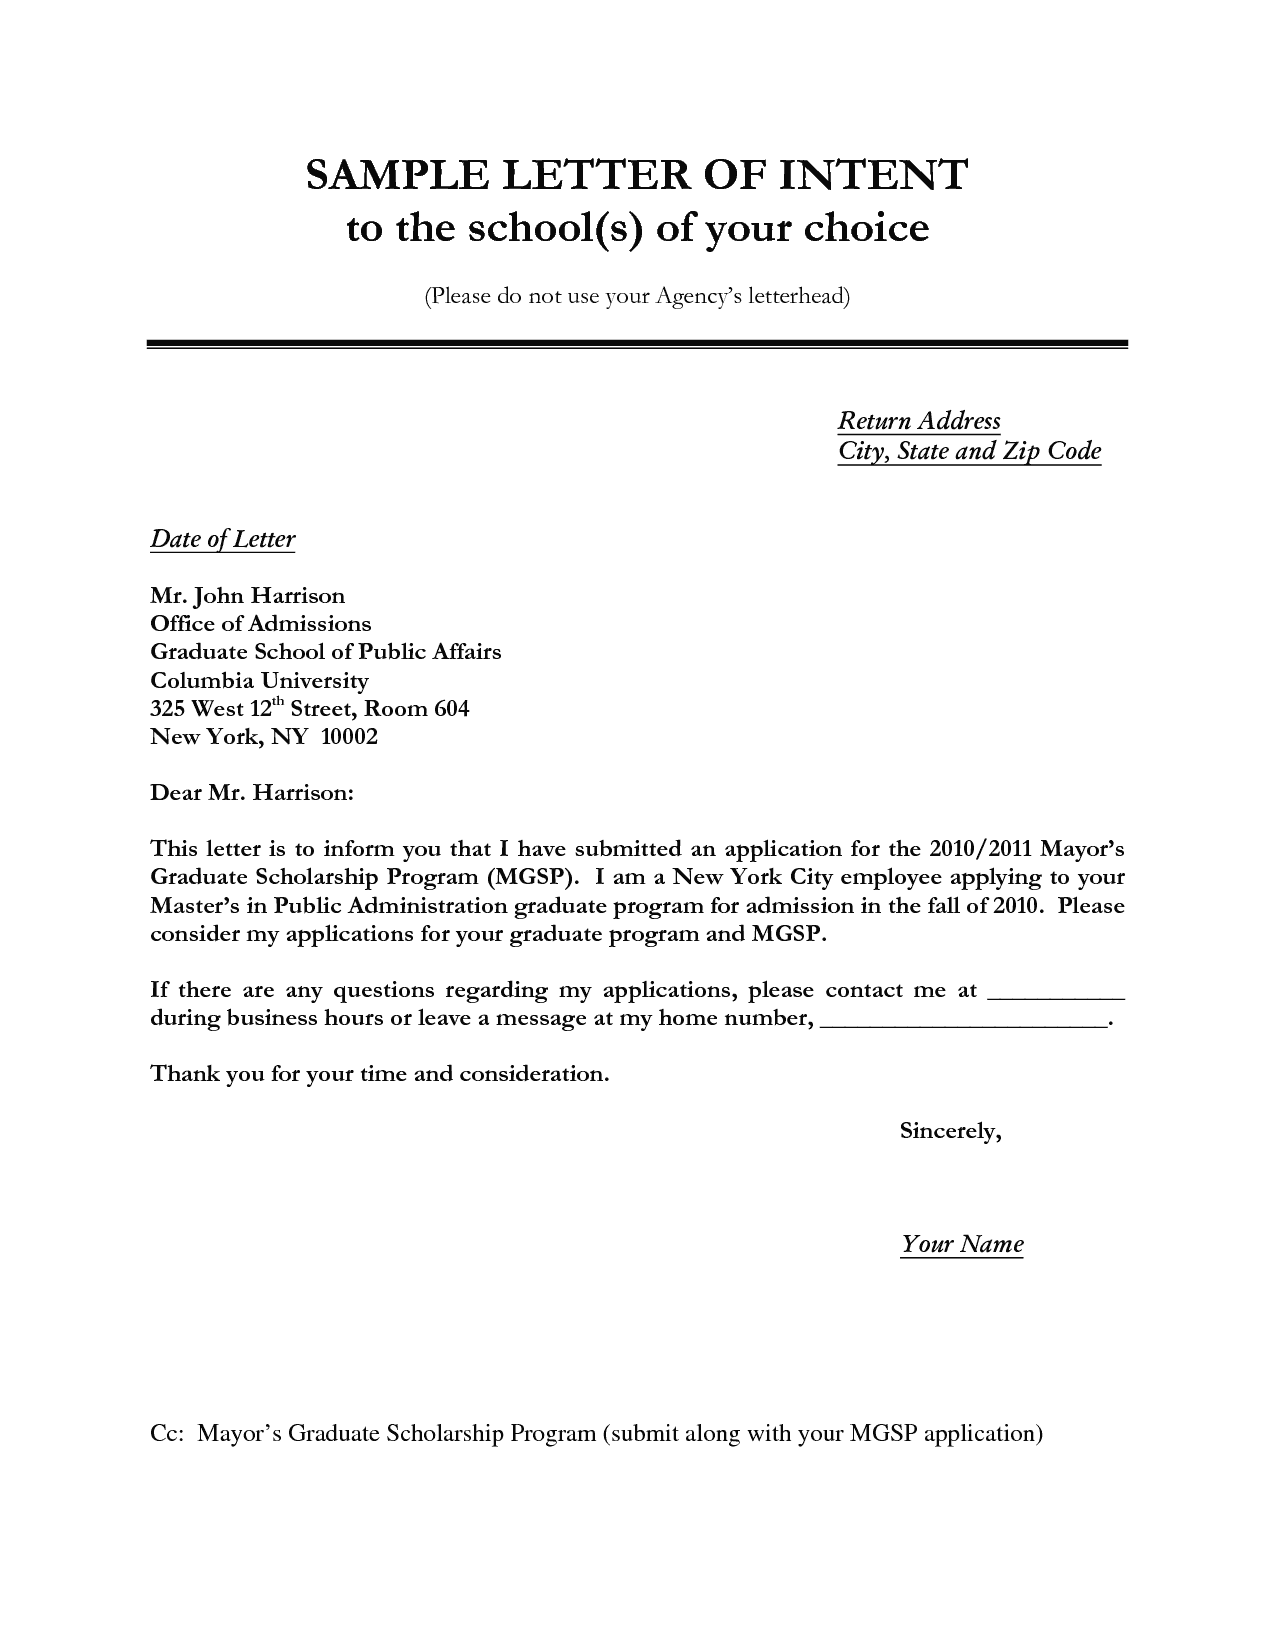 40+ letter of intent templates & samples [for job, school, business].